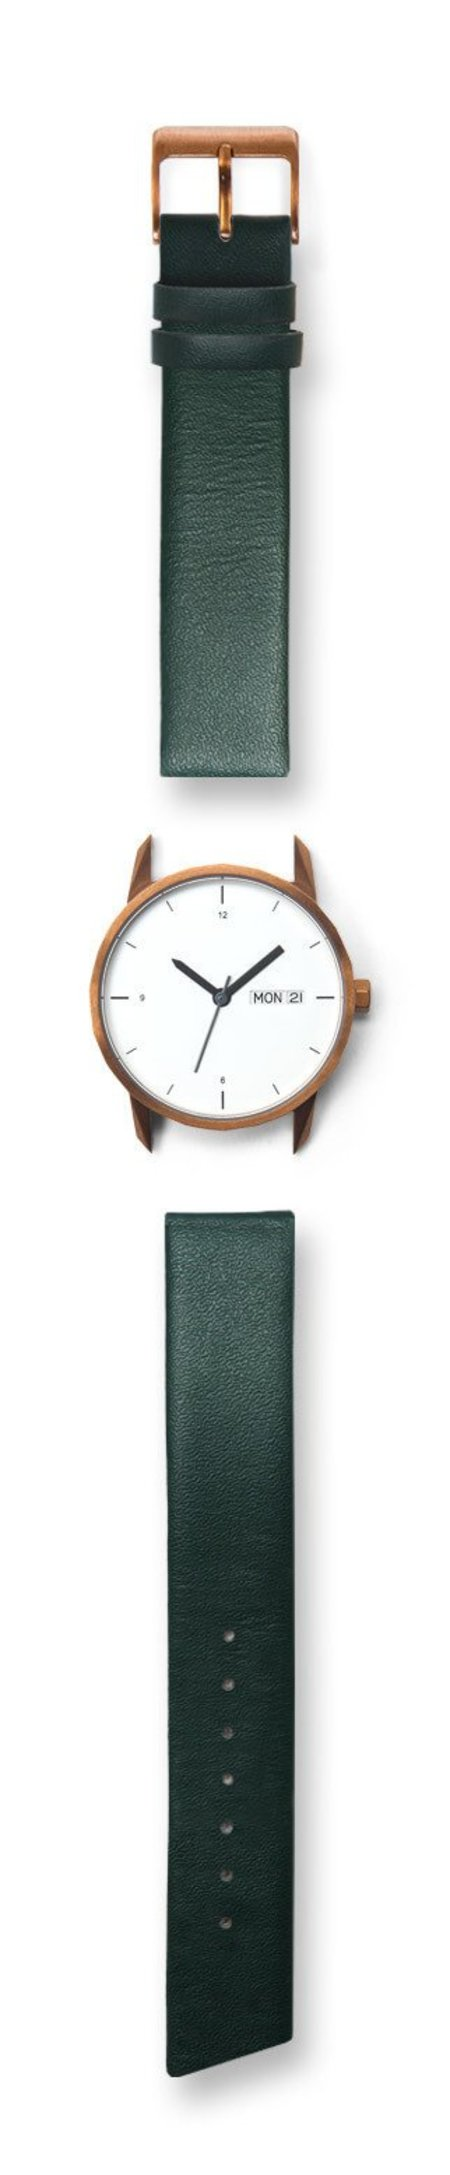 Tinker Watches 34mm Copper Watch Green Strap